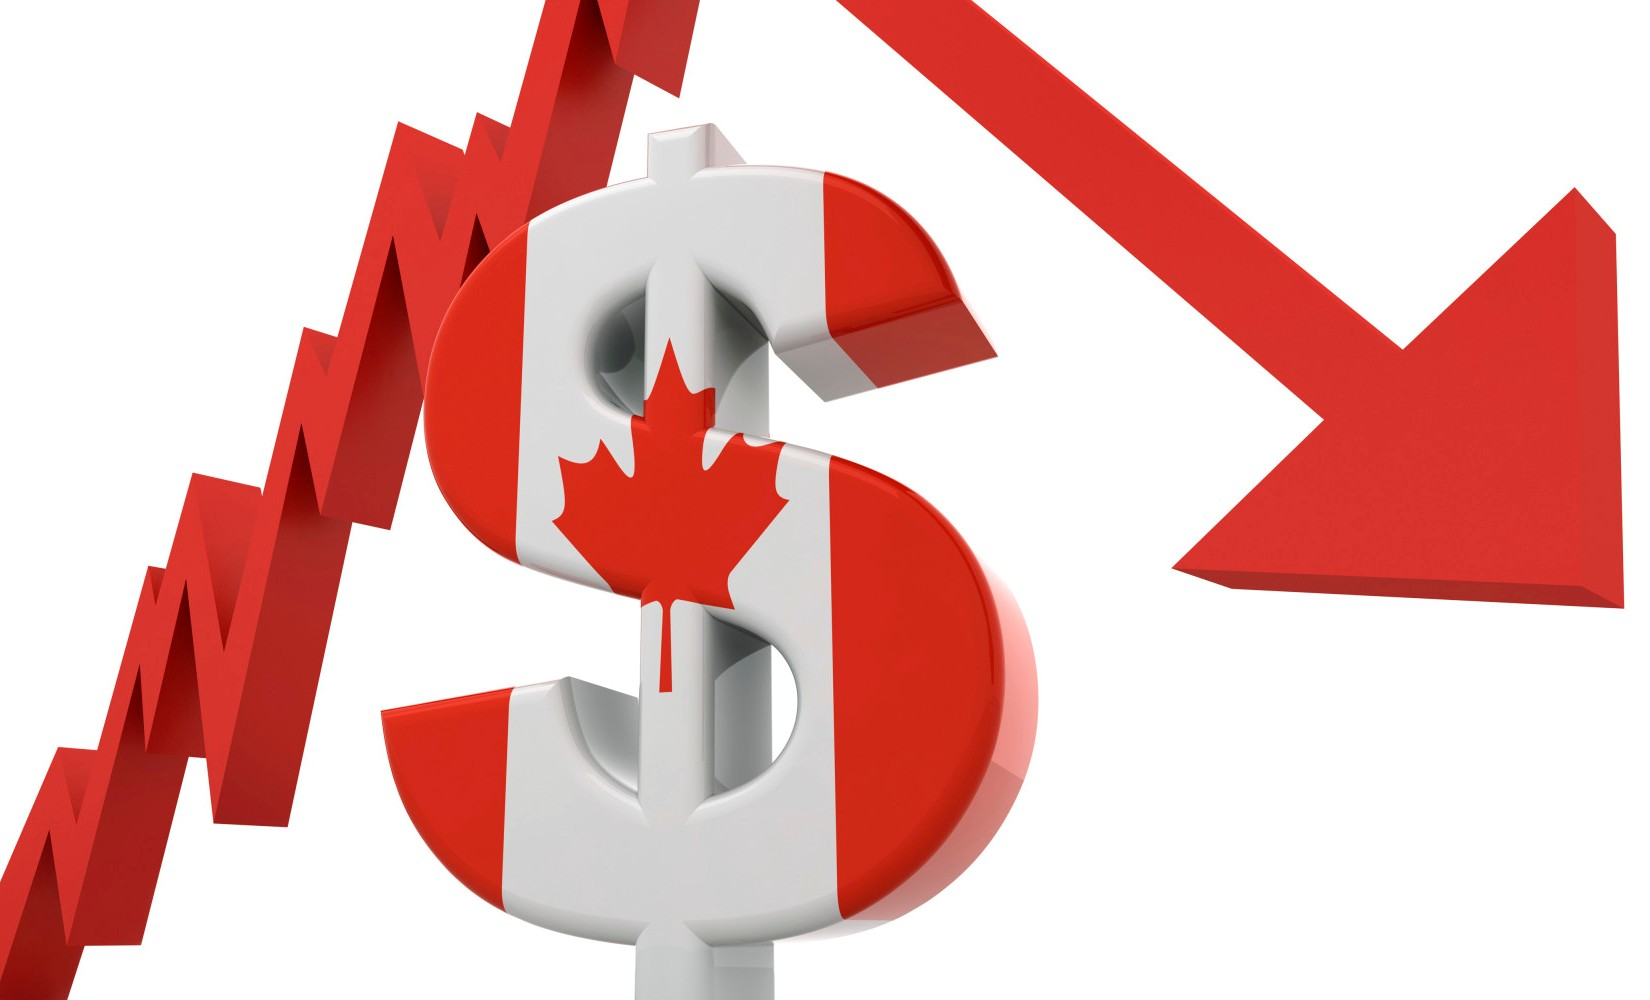 Canadian Dollar Crash Concept